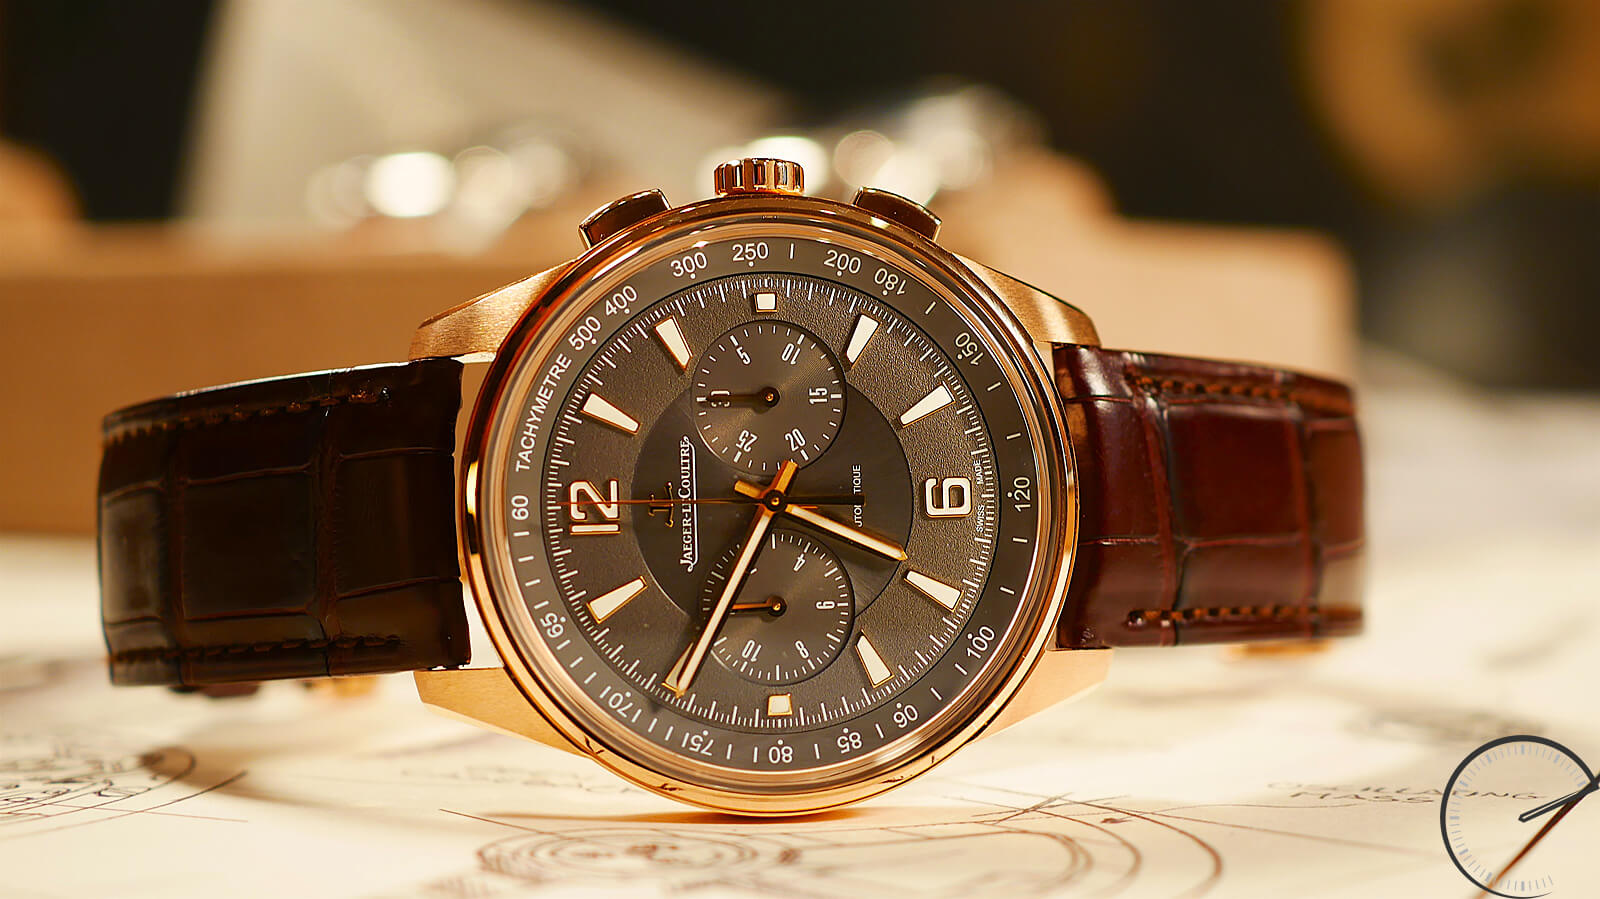 Jaeger_LeCoultre Polaris Chronograph in Rose Gold - column wheel chronograph and novelty at SIHH 2018